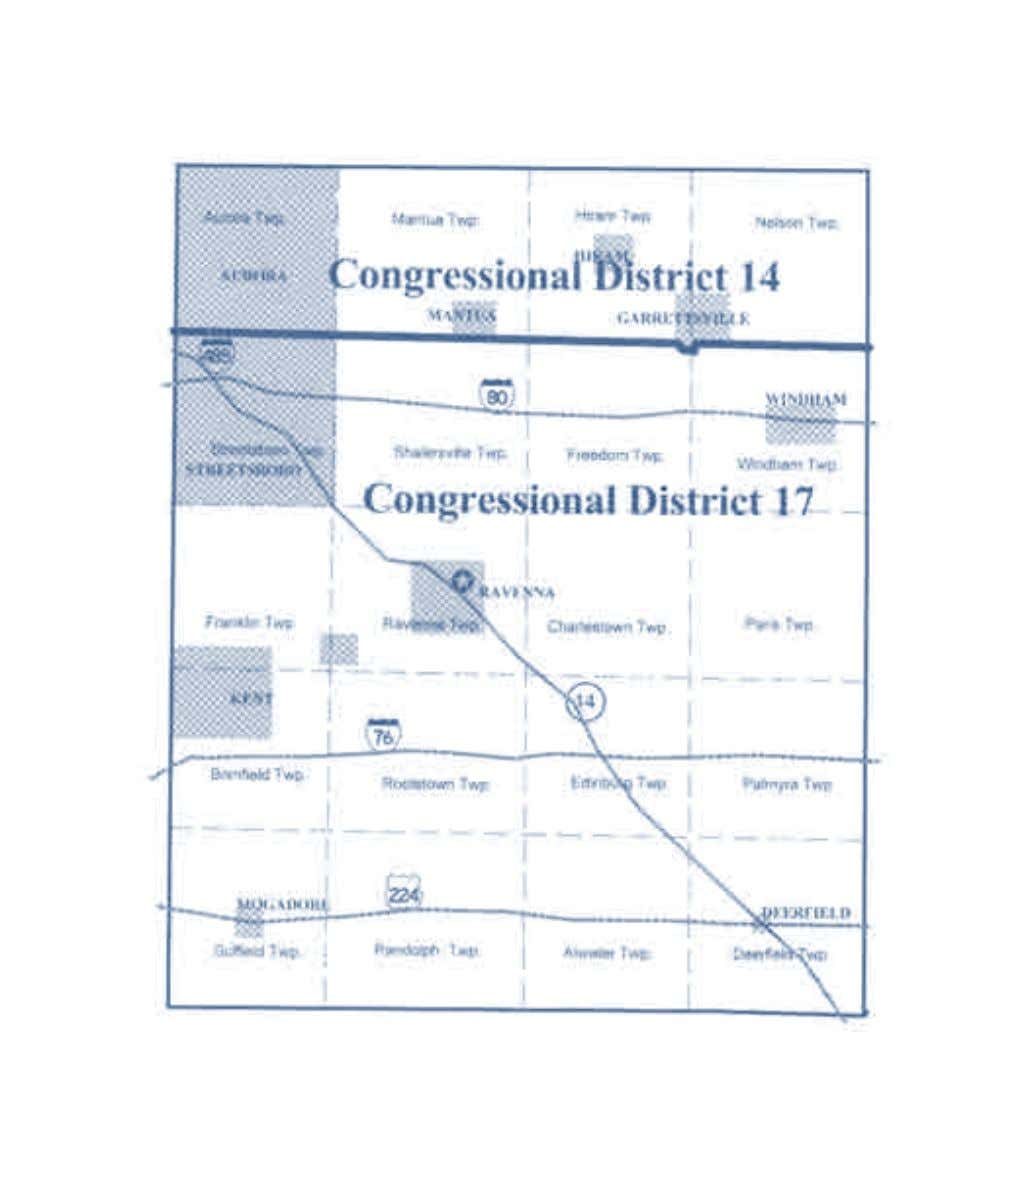 2002-2012 OhiO District Maps Portage County Congressional Districts 20 Office of the Ohio Secretary of State